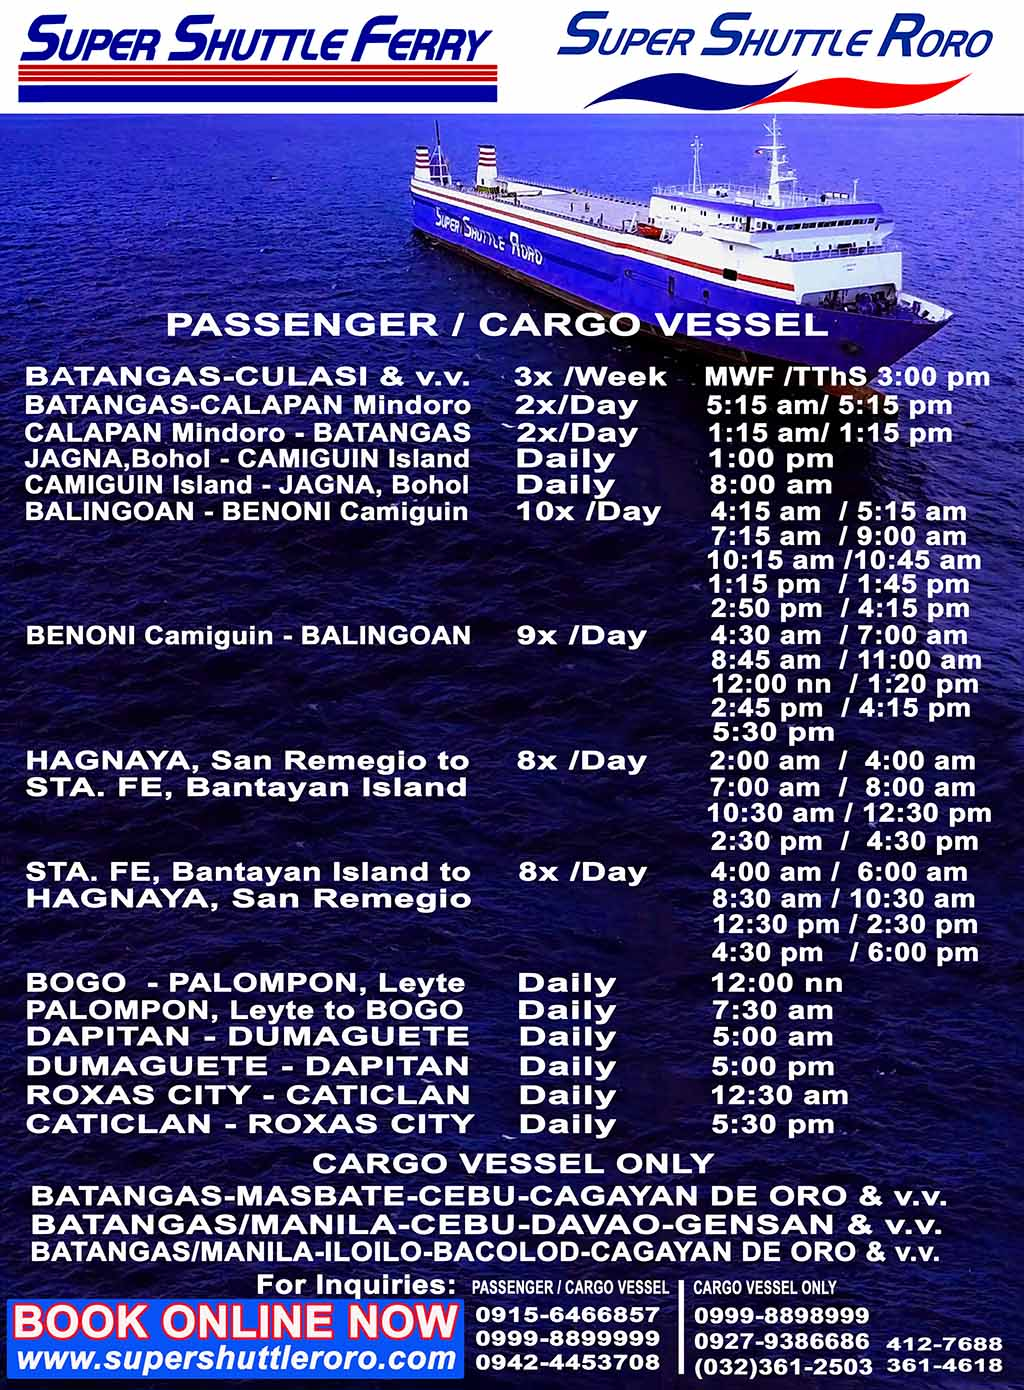 Super Shuttle RORO Ferry Schedule